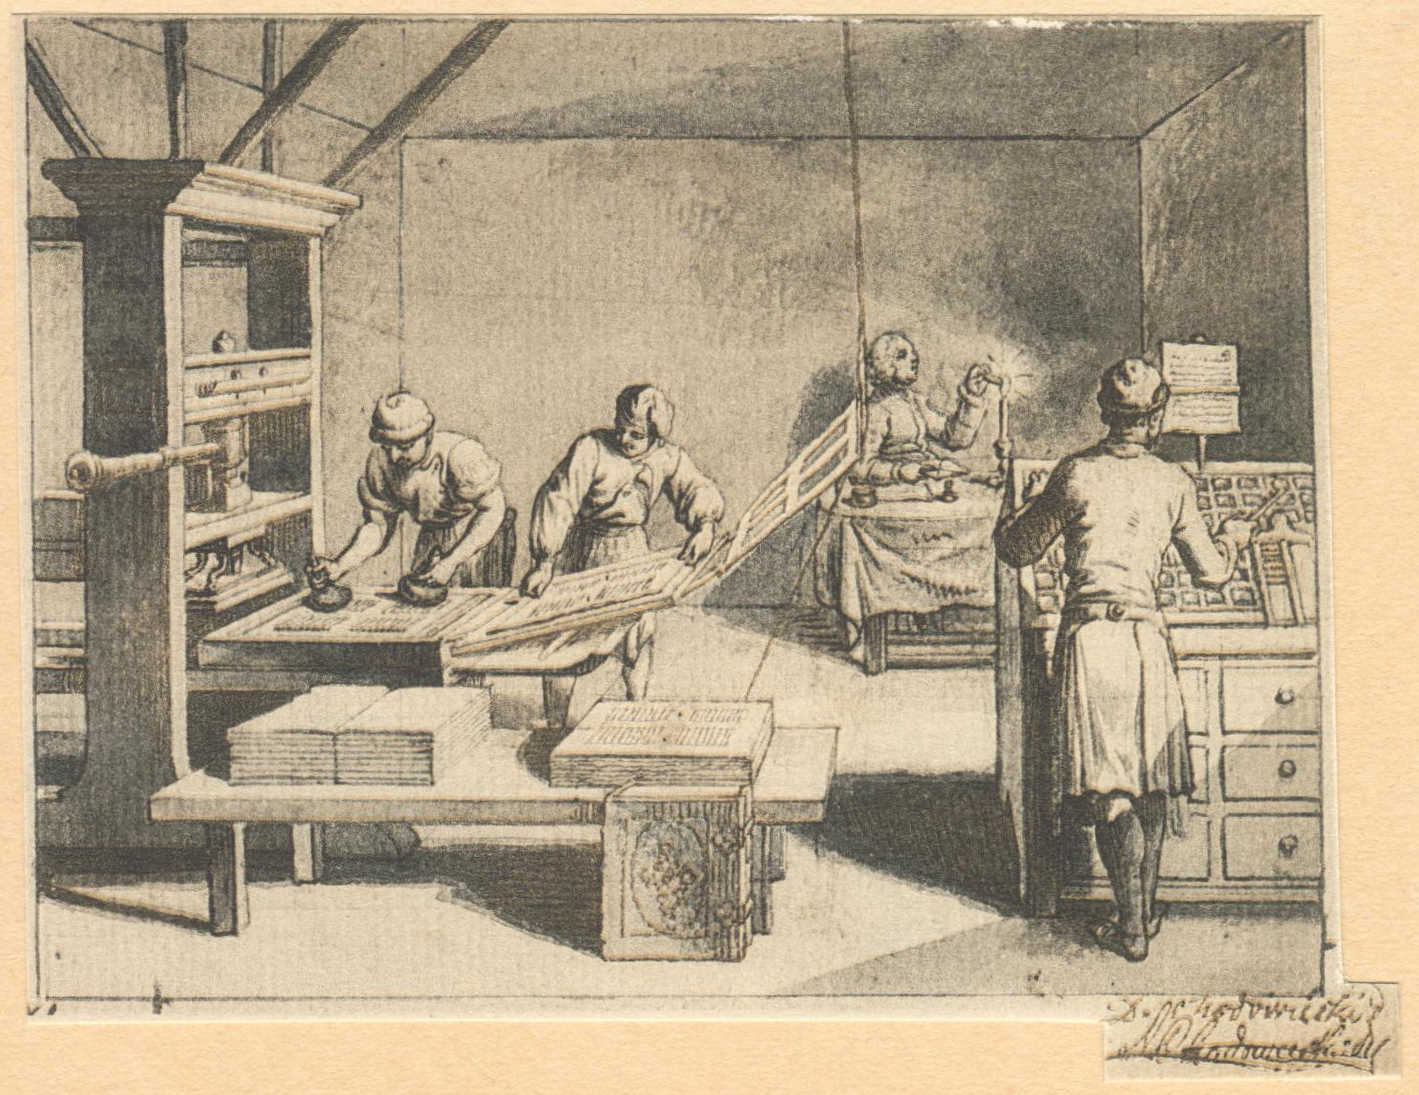 An old fashioned newspaper print shop